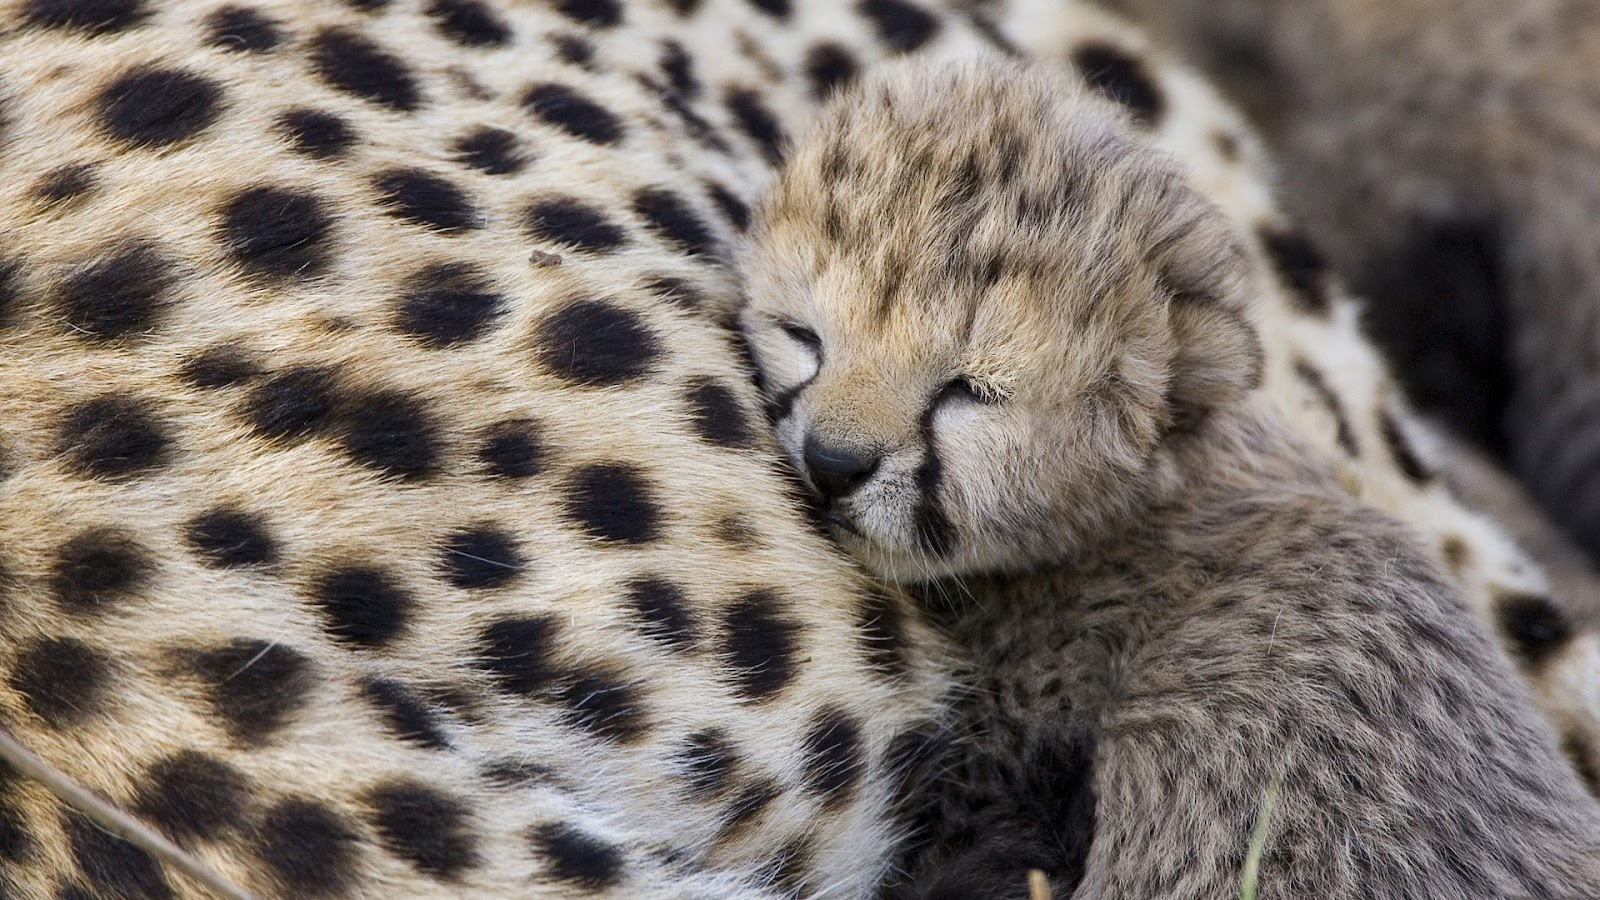 http://2.bp.blogspot.com/-vCSSElFH5NM/T3SiLl_IxmI/AAAAAAAABCI/52x4dyDB1Ik/s1600/Cheetah+with+its+child.jpg